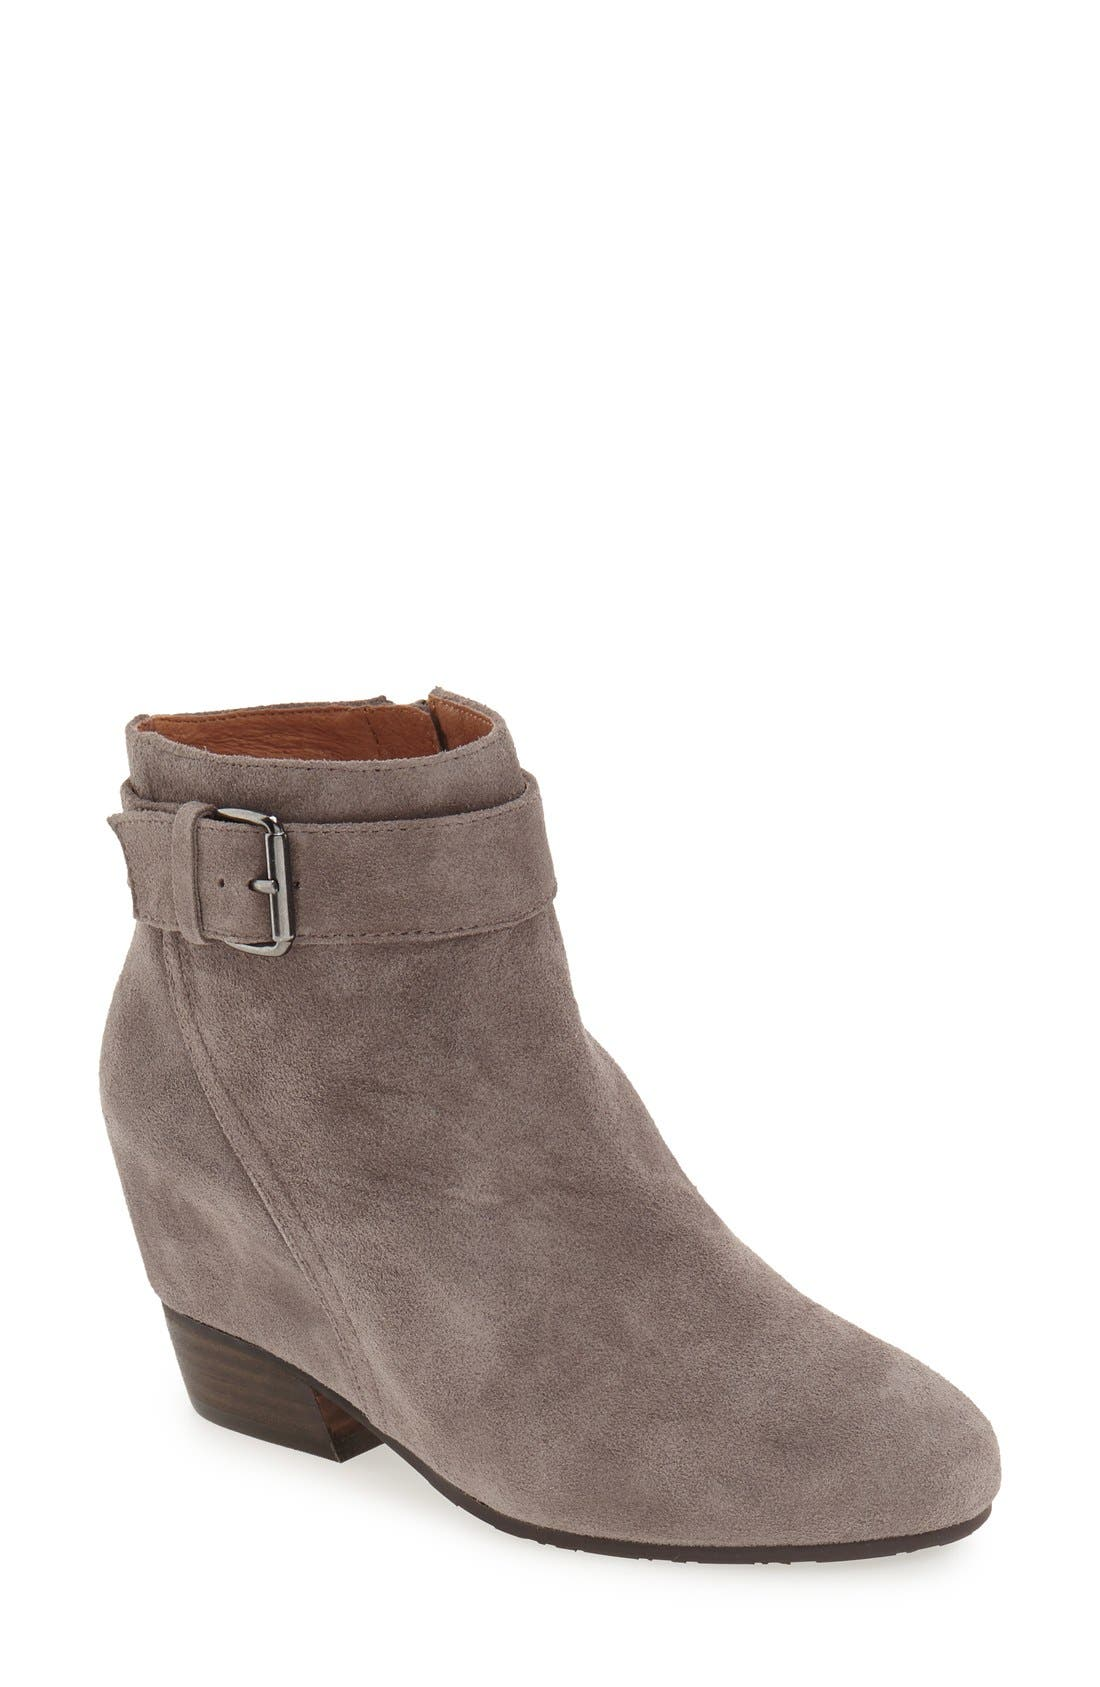 GENTLE SOULS 'Birdie' Hidden Wedge Boot